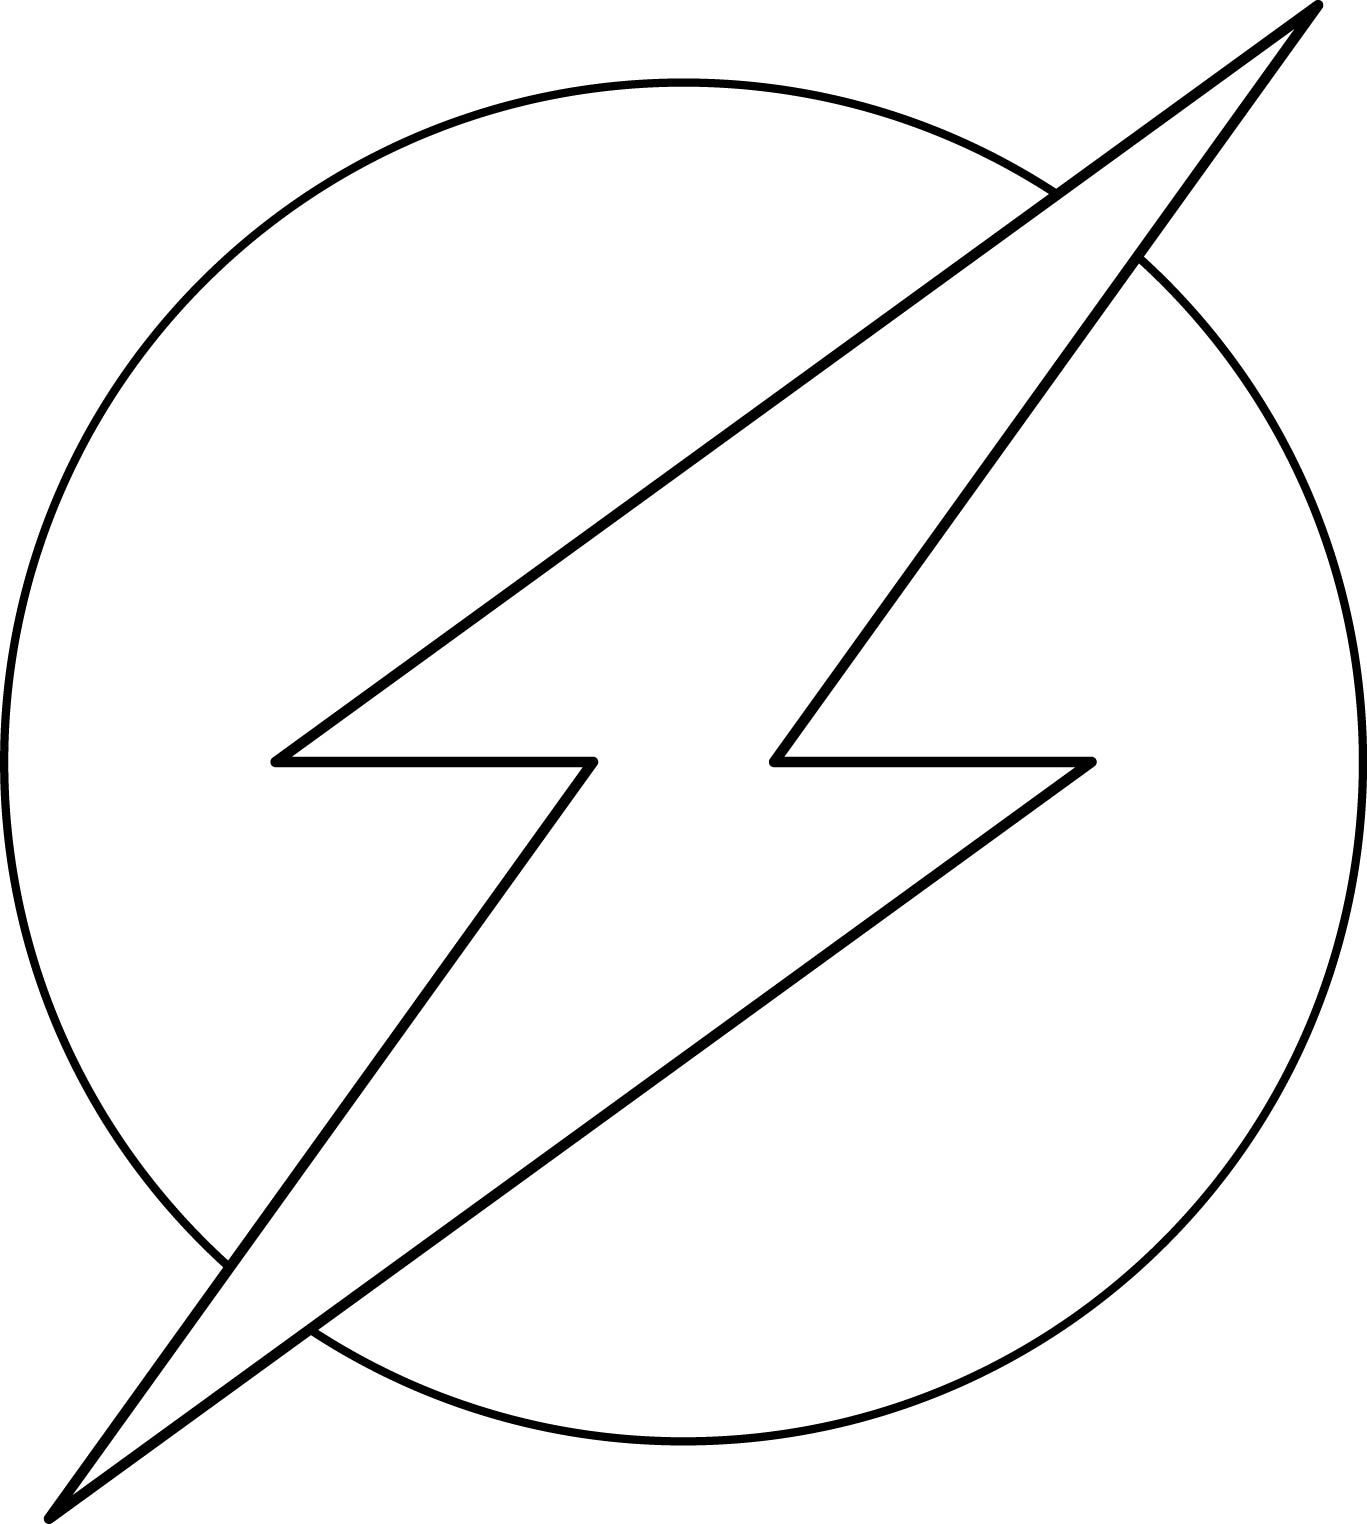 Super Heroes Logos Coloring Pages | Art | Pinterest | Flash ...